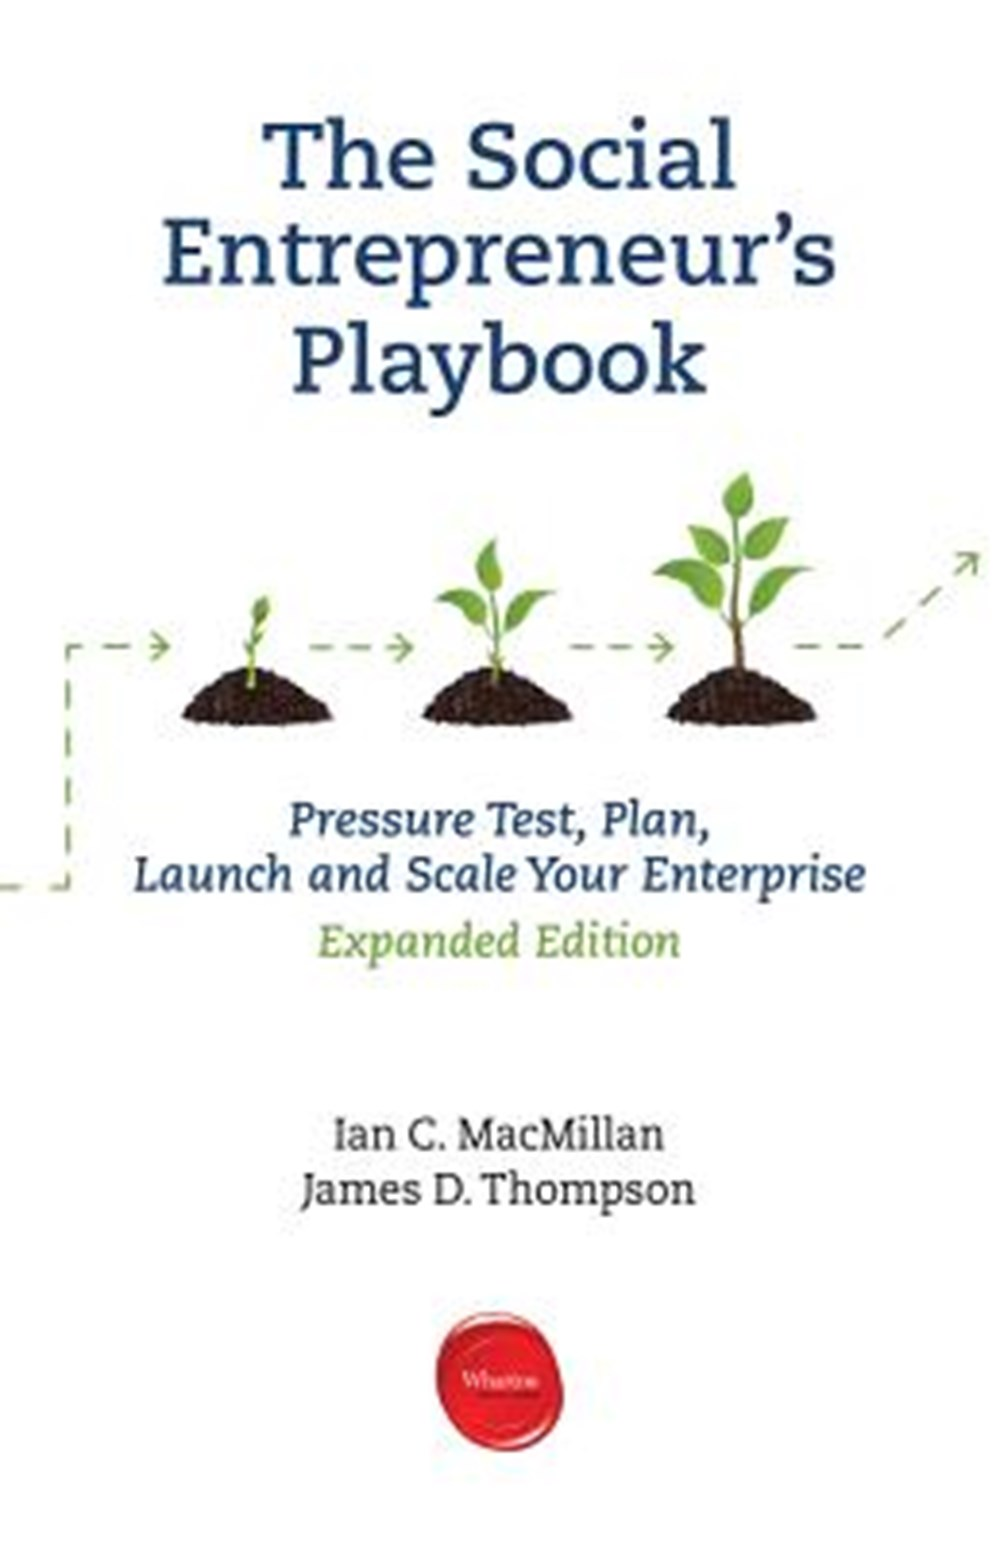 Social Entrepreneur's Playbook, Expanded Edition Pressure Test, Plan, Launch and Scale Your Social E